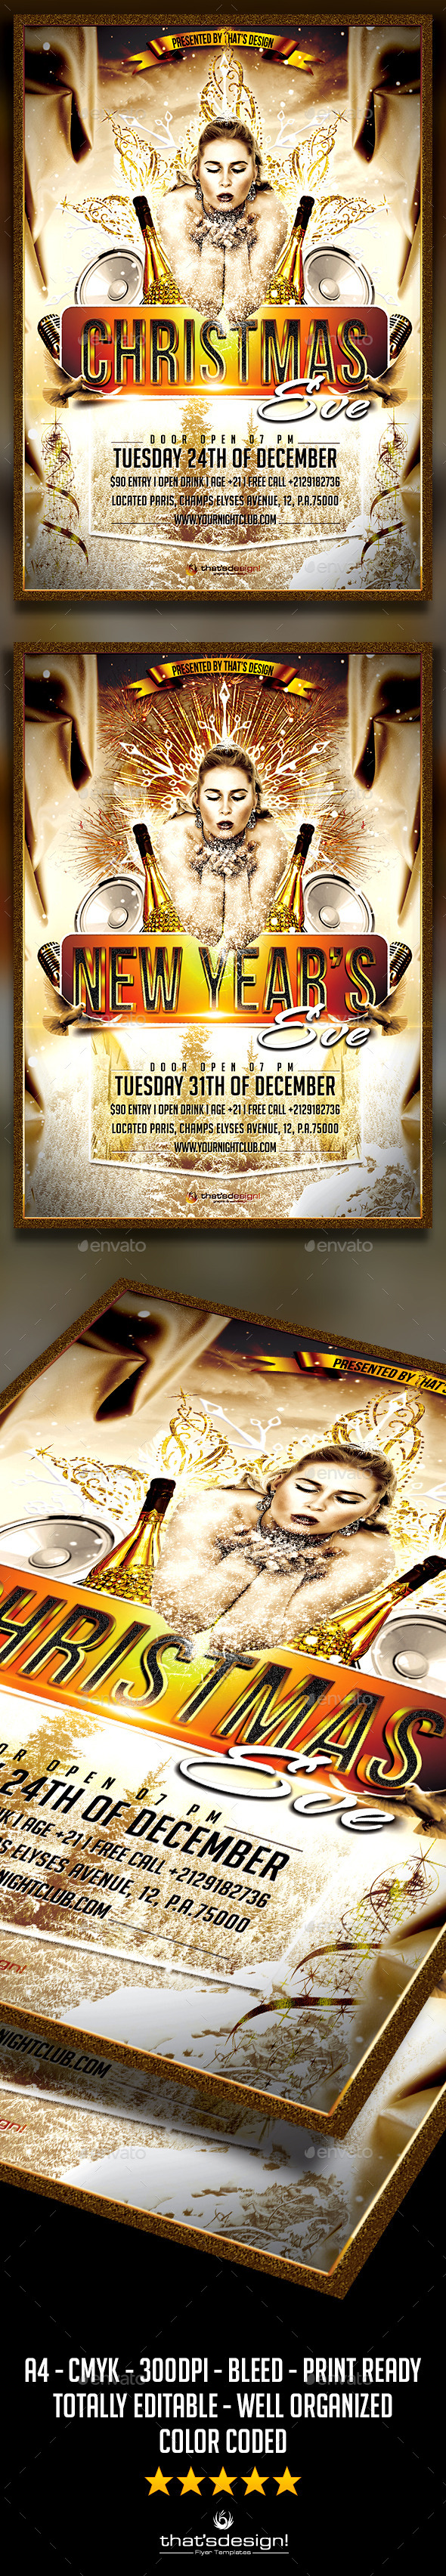 Christmas / New Year Flyer Template - Holidays Events